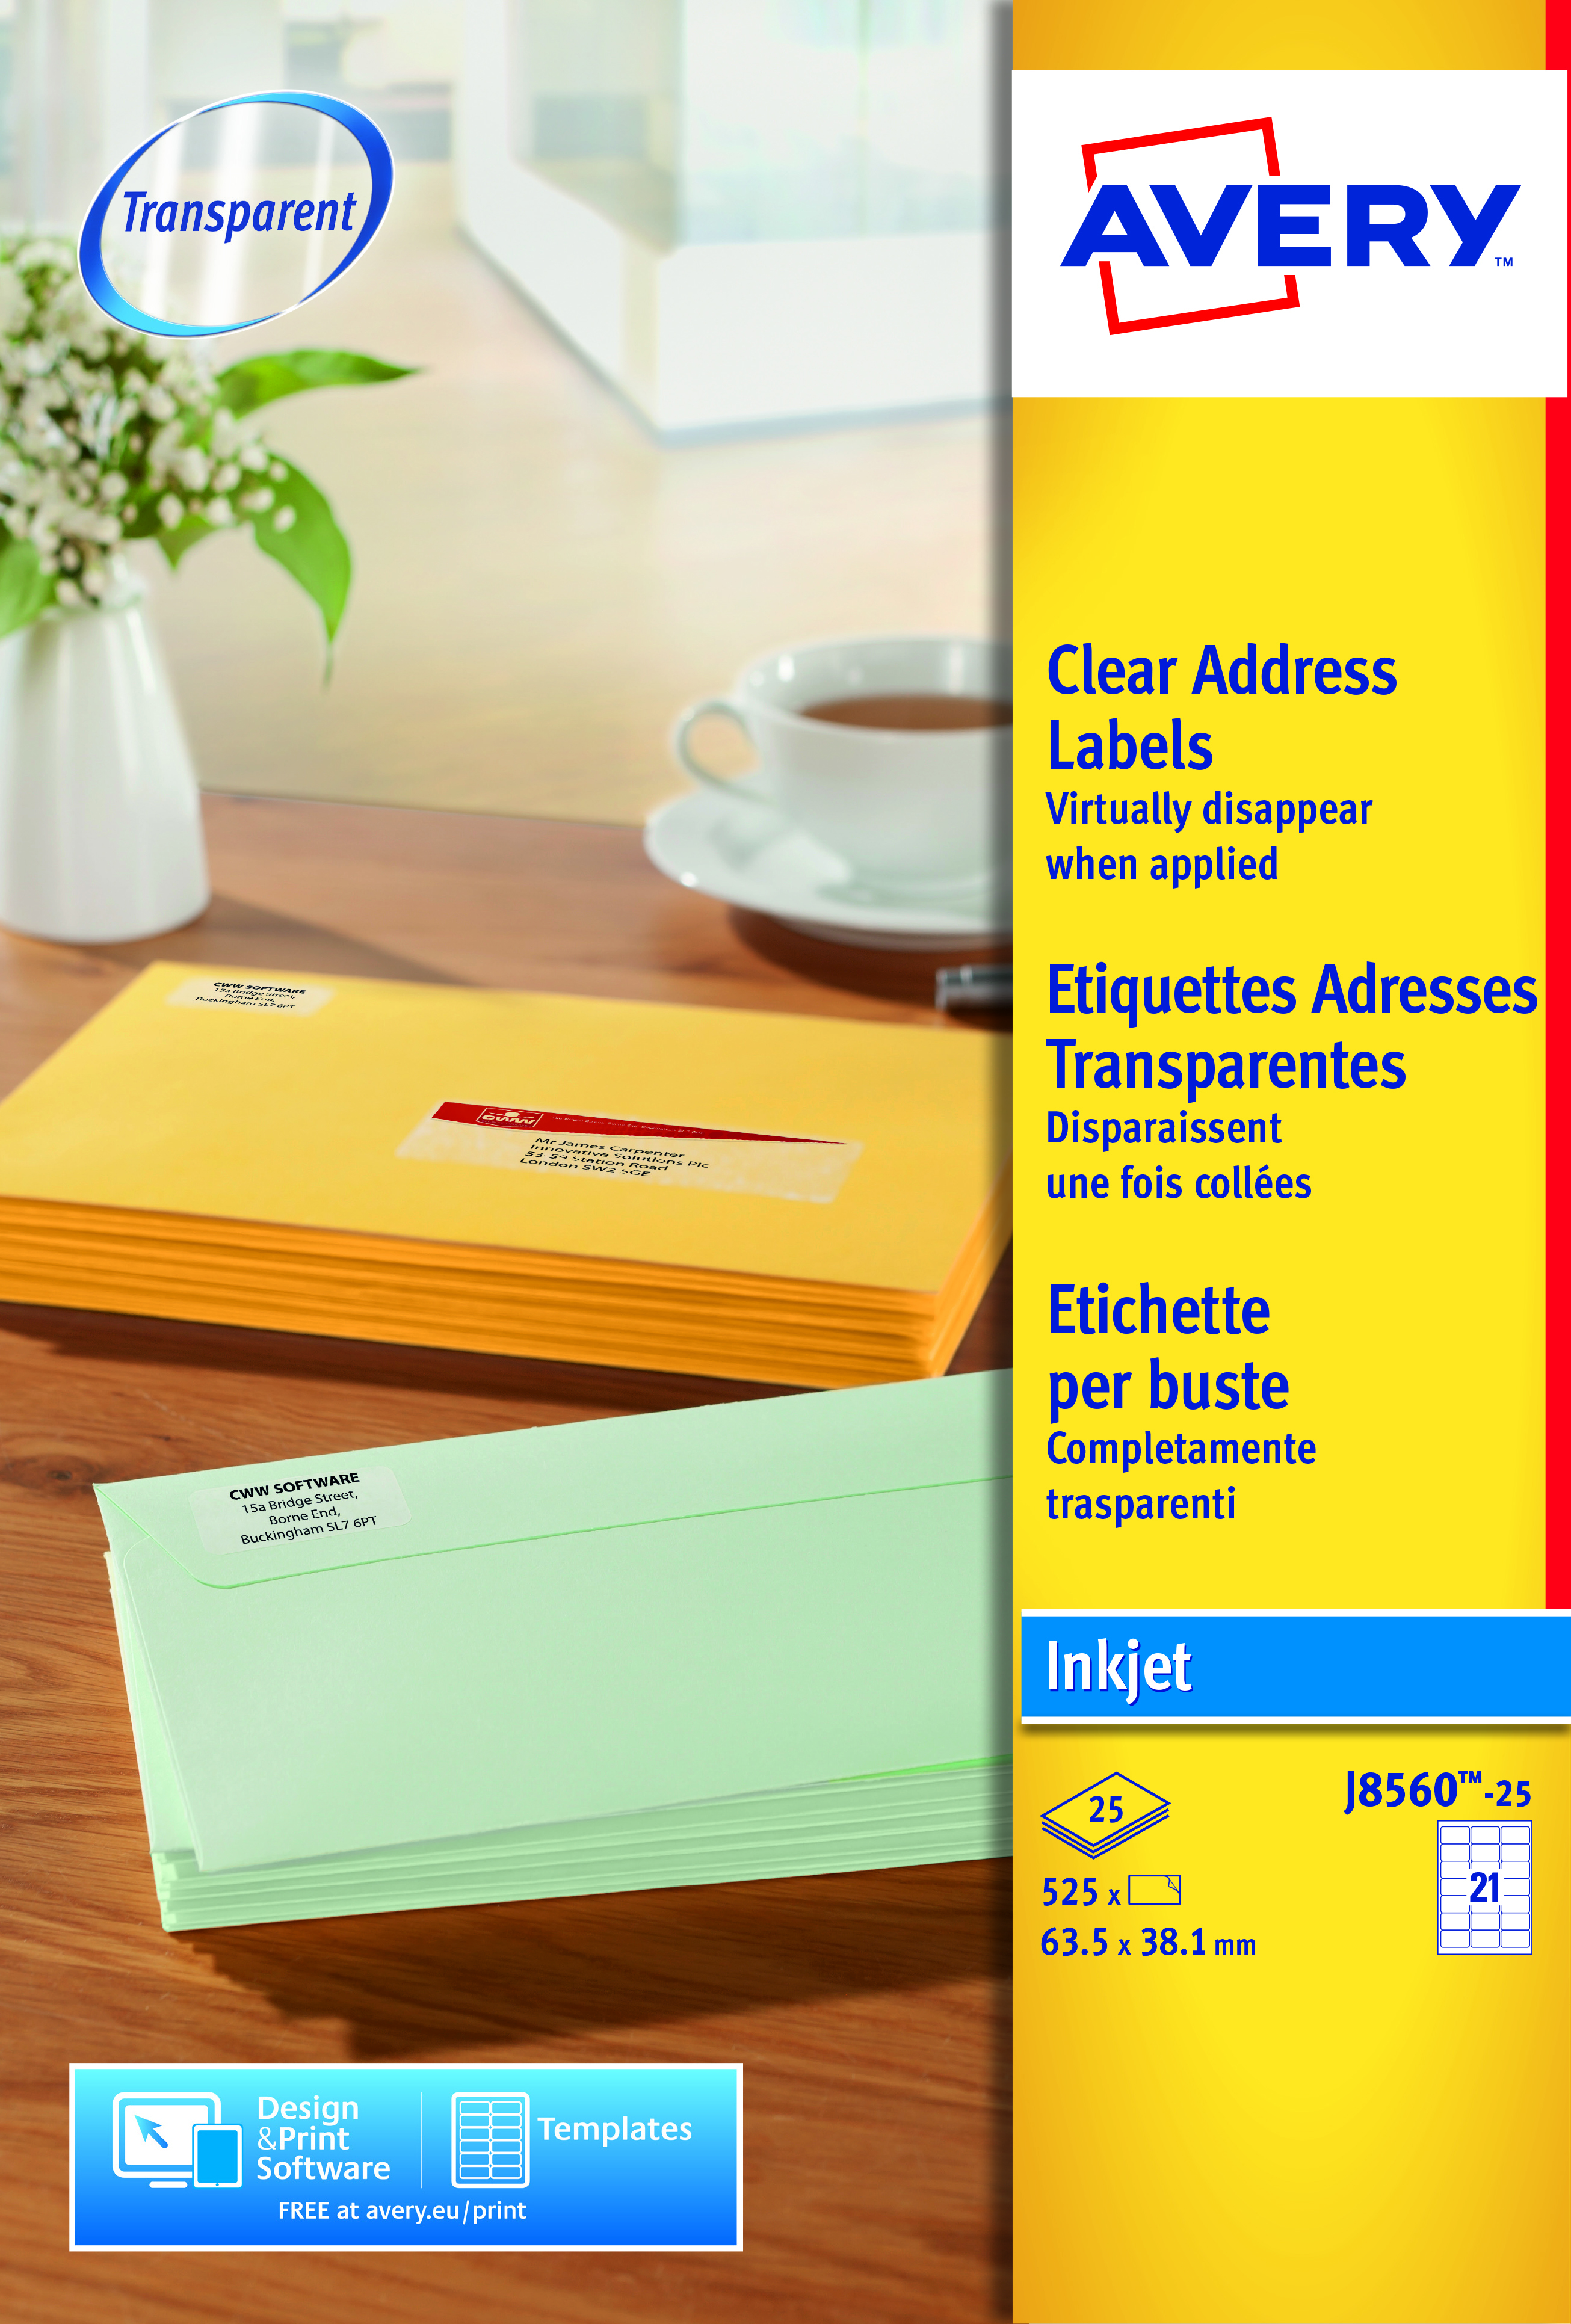 Avery Clear Addressing Labels Laser 21 per Sheet 63.5x38.1